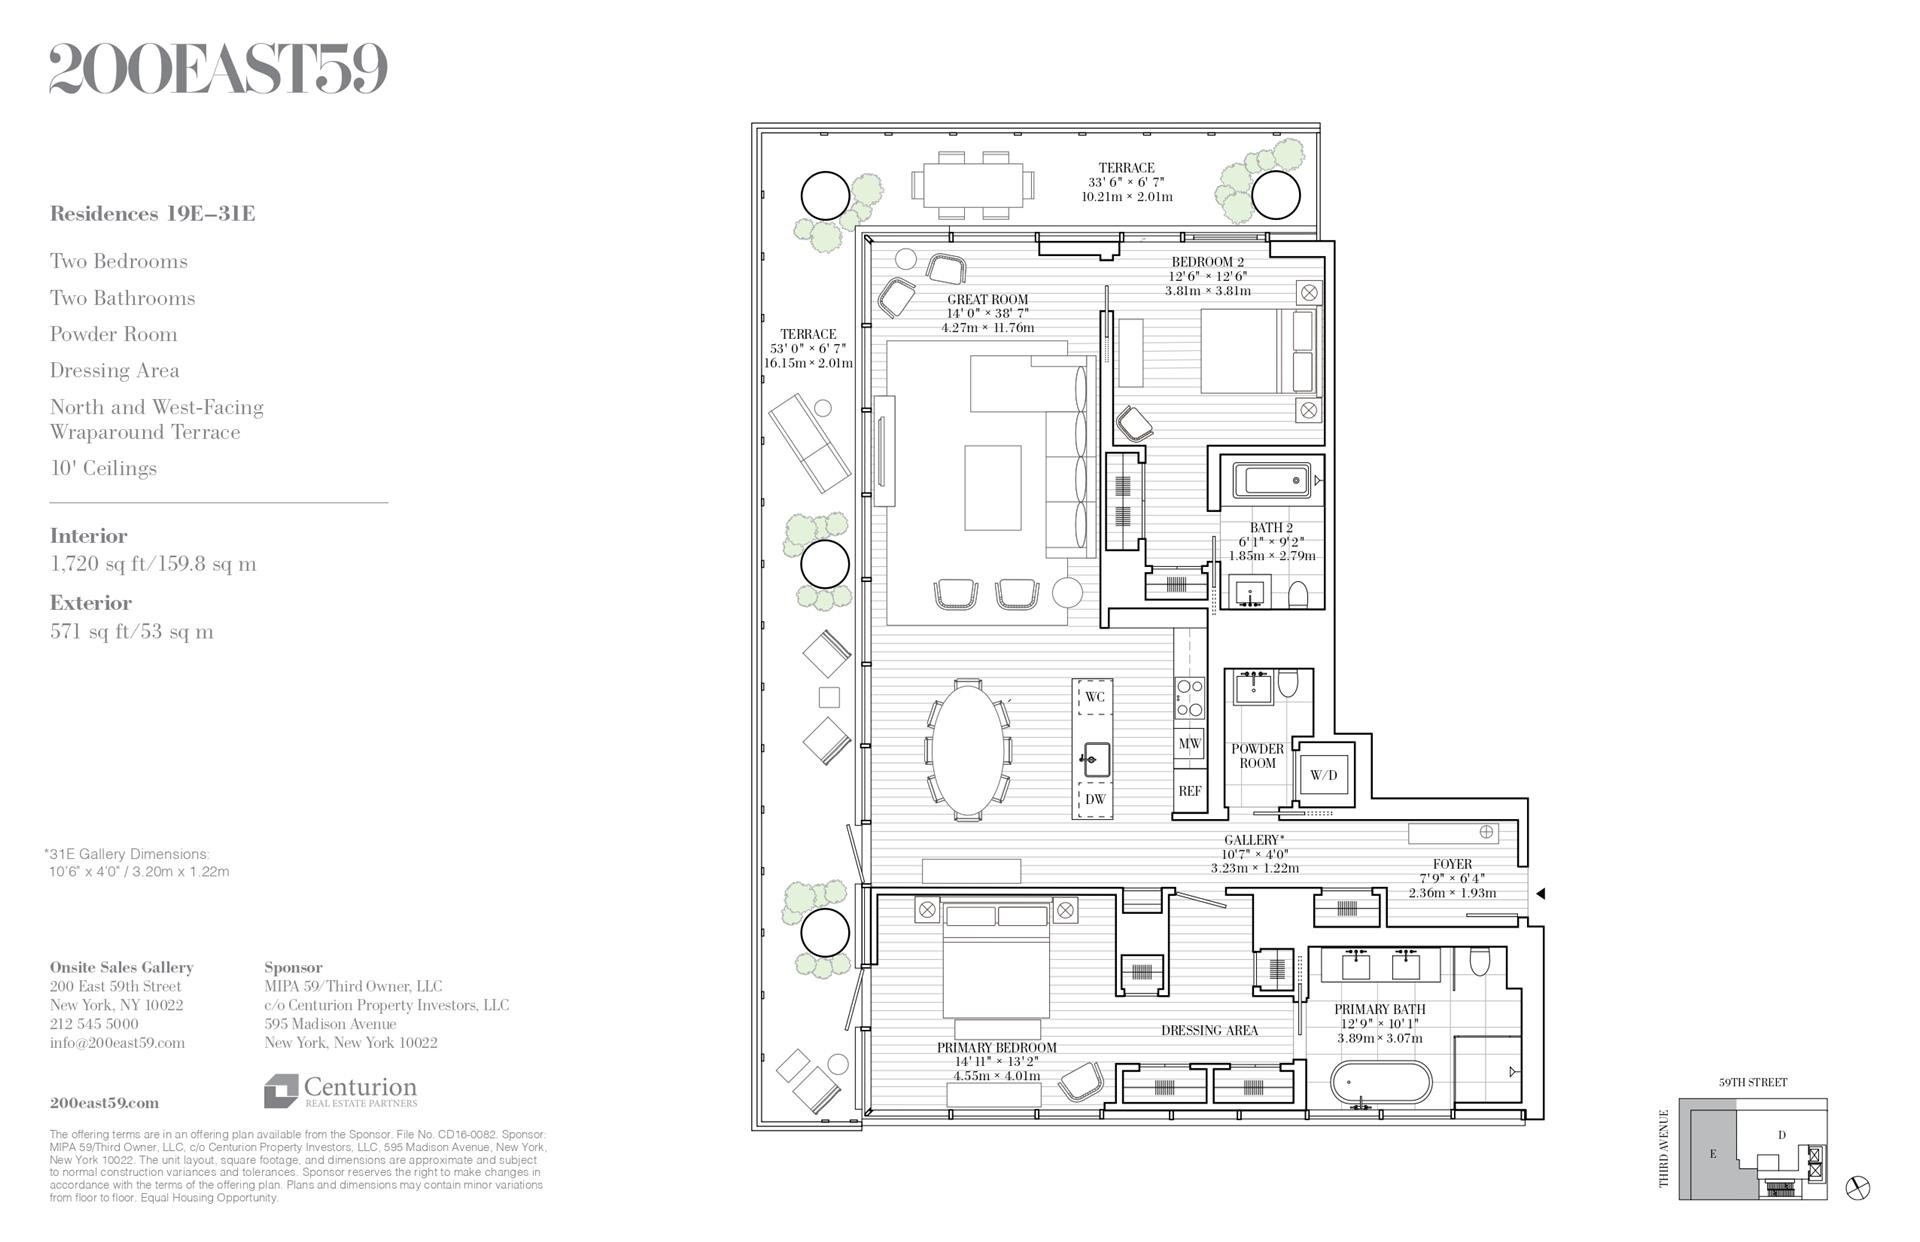 1. Condominiums for Sale at 200 East 59th St, 19E Midtown Manhattan, New York, NY 10022